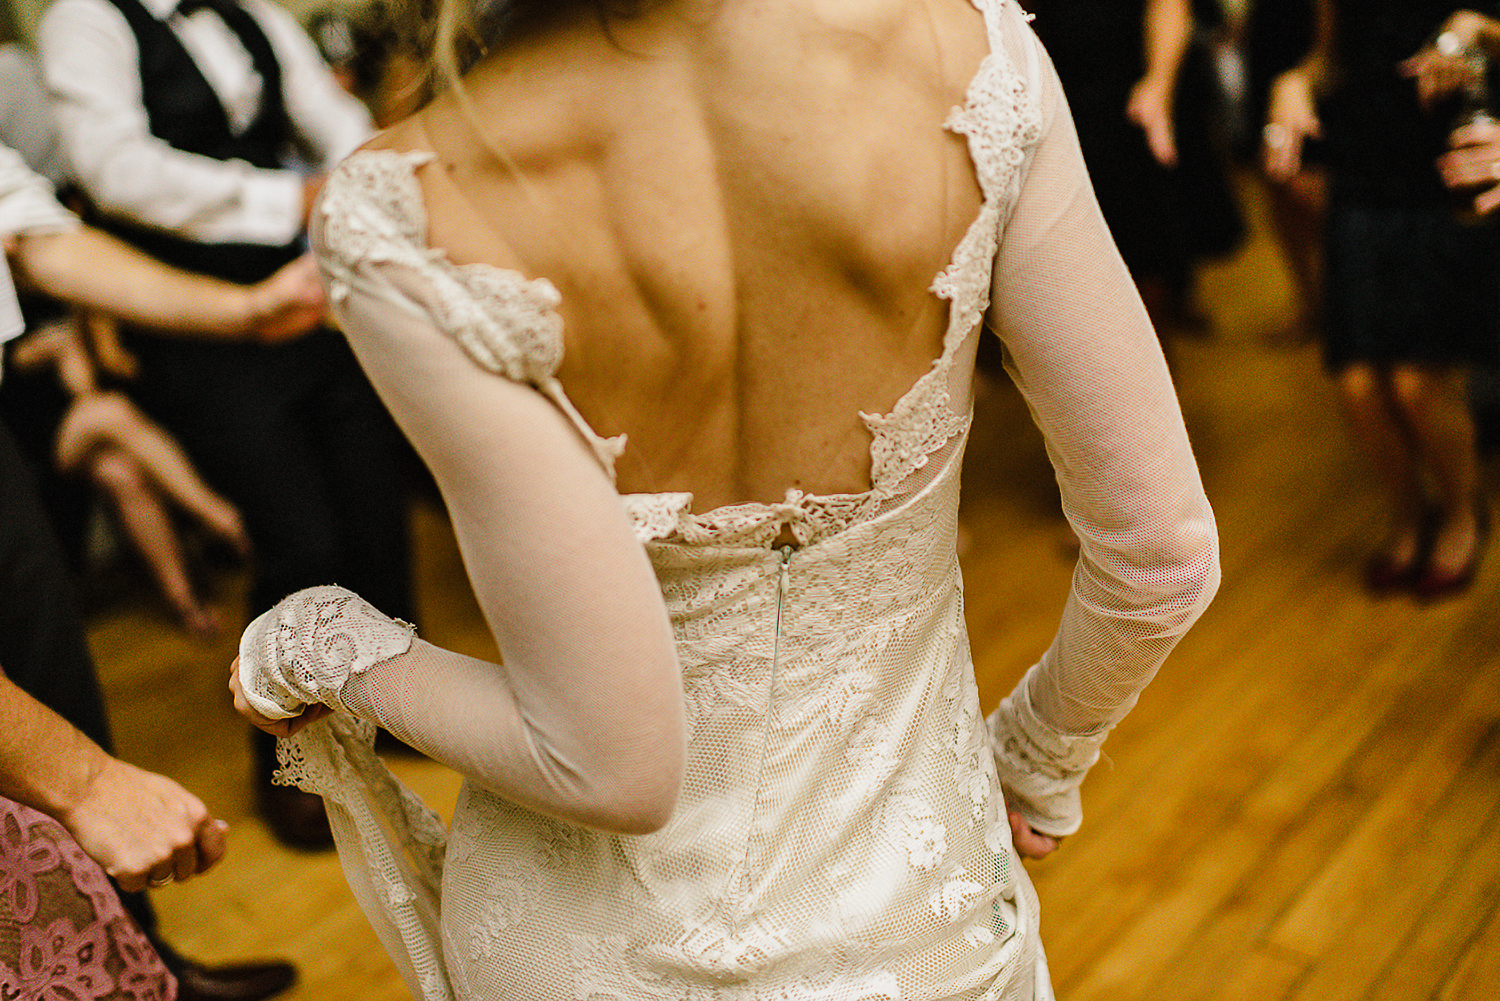 Best-Moody-Documentary-Wedding-Photography-Photojournalism-Vintage-Small-Town-Chapel-Wedding-Toronto-Ontario_Reception-Dance-Party-Bride-dancing-dress-details.jpg